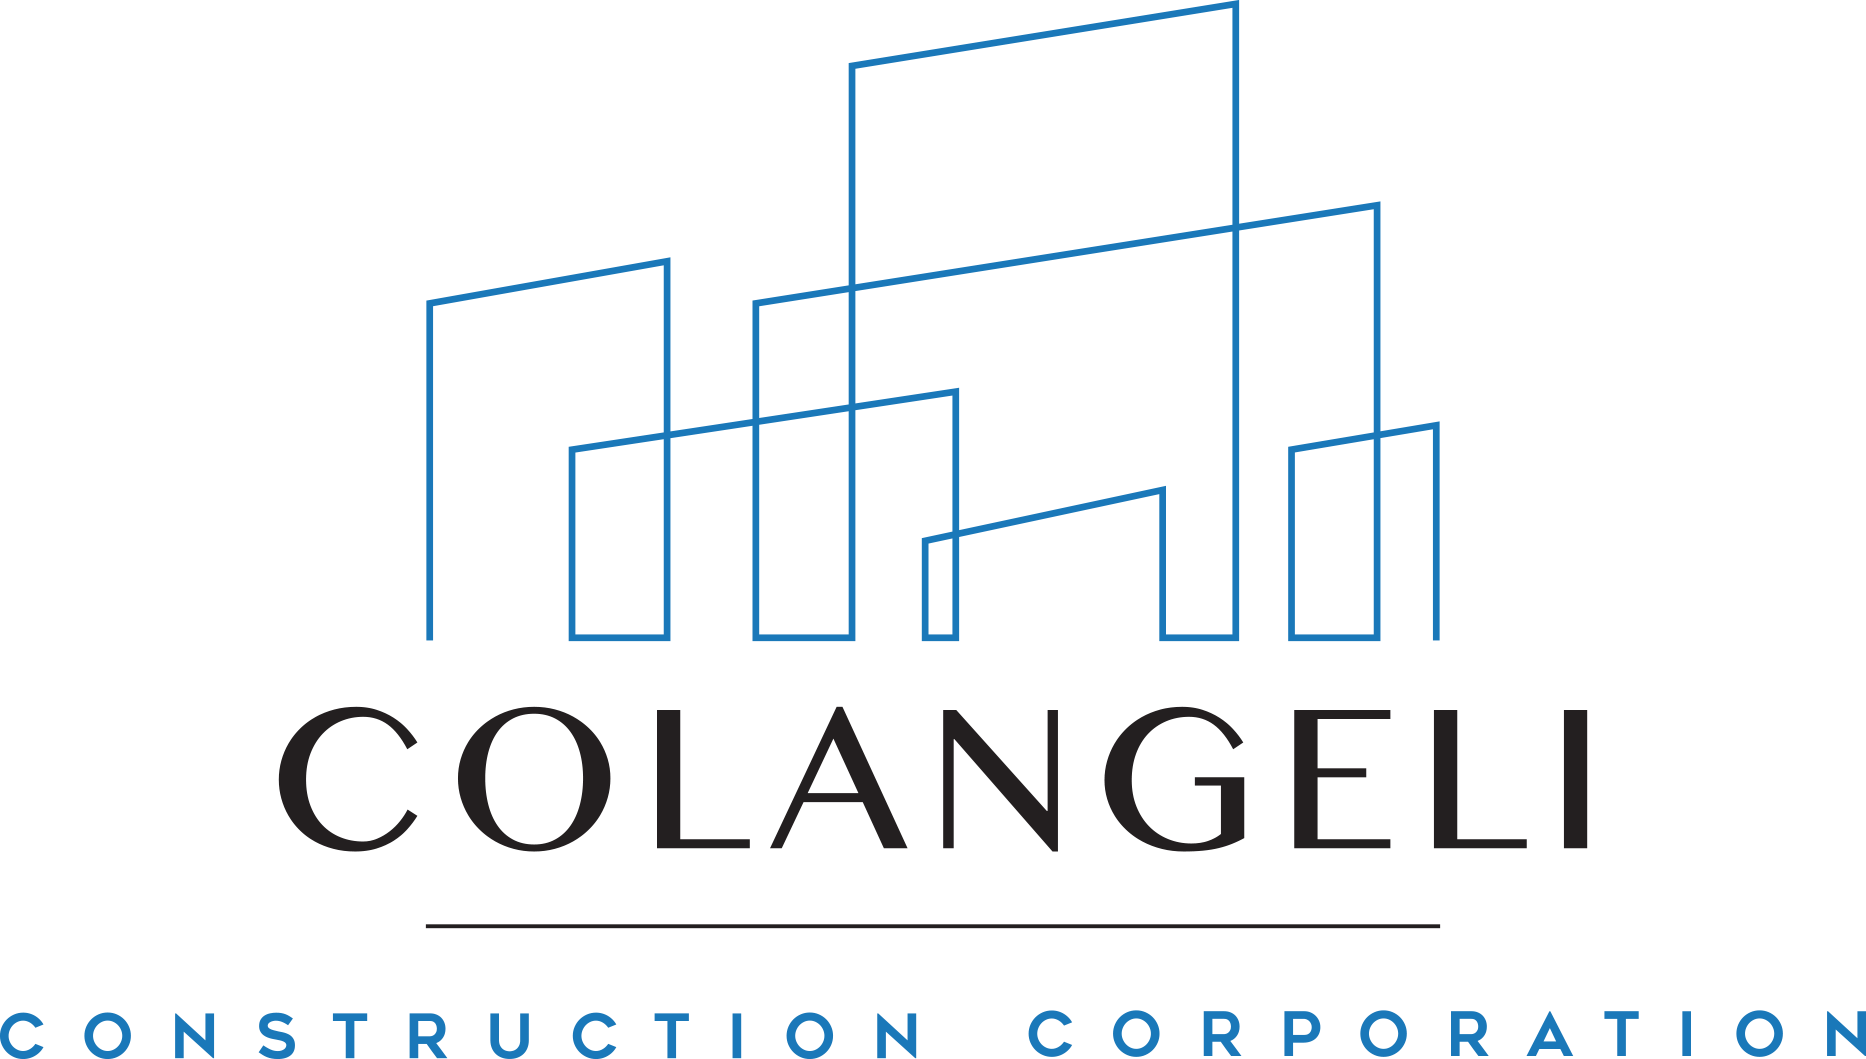 Colangeli Construction Corporation